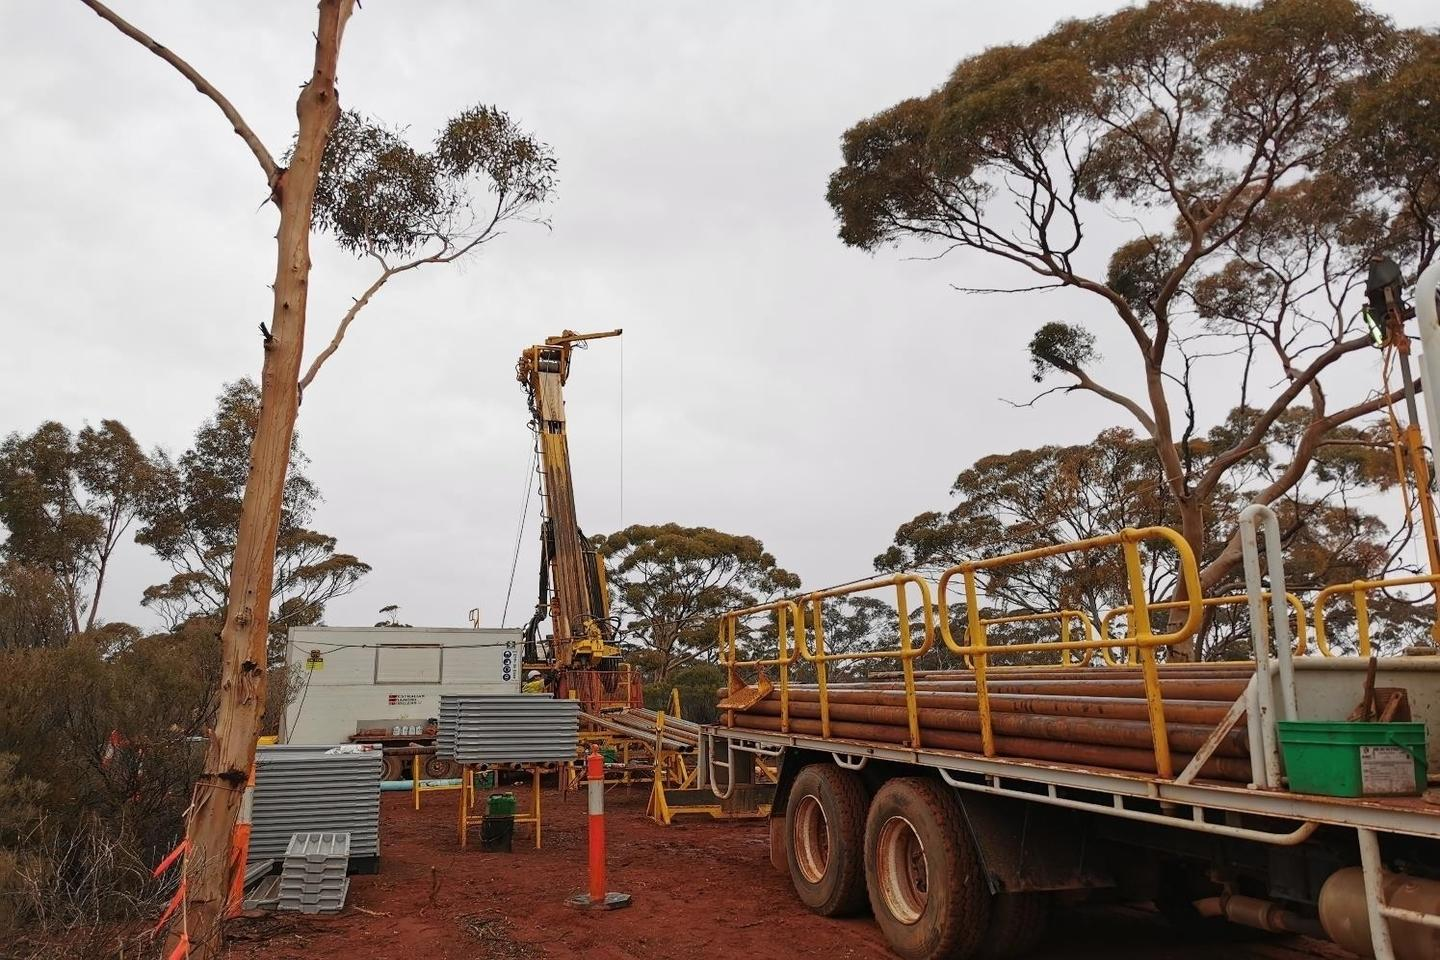 Anglo removes legacy royalties over Mandilla gold project